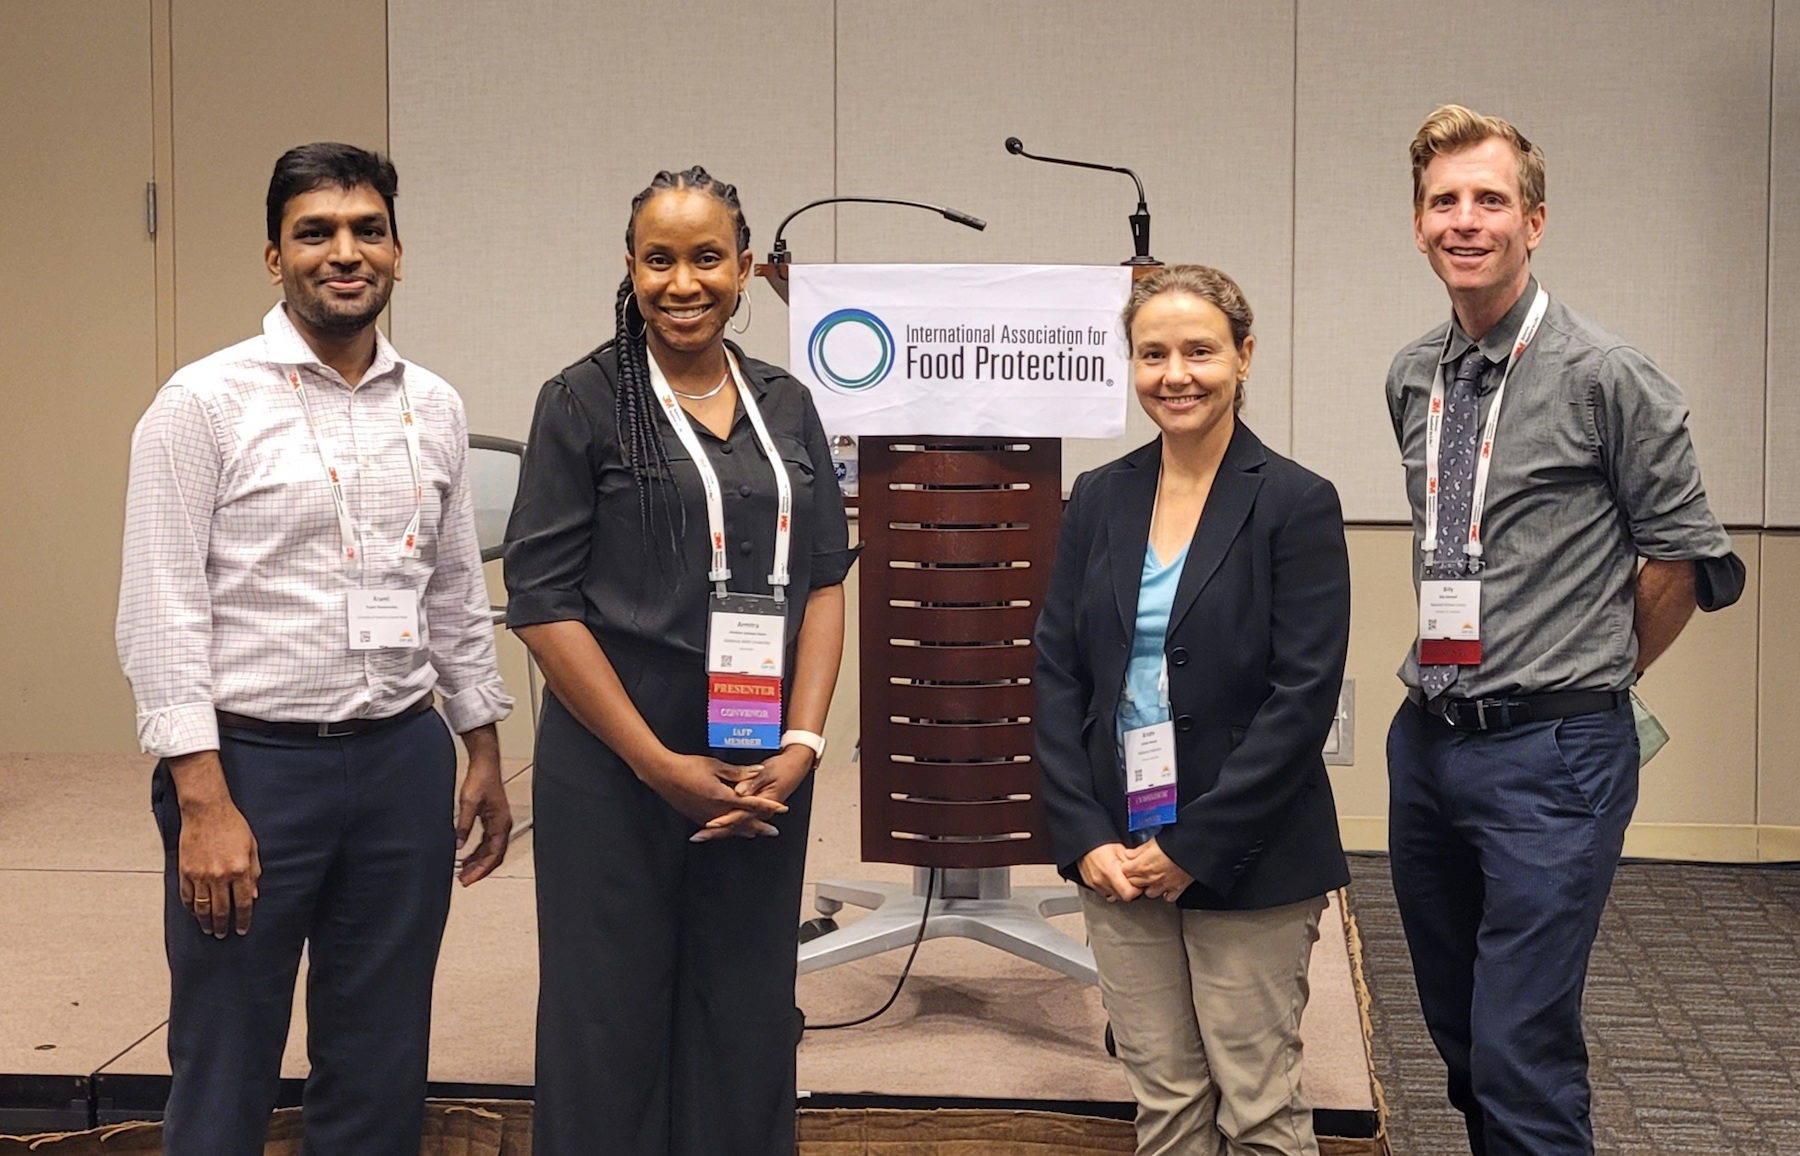 Food Safety Spotlight: Meaningful Collaboration at IAFP